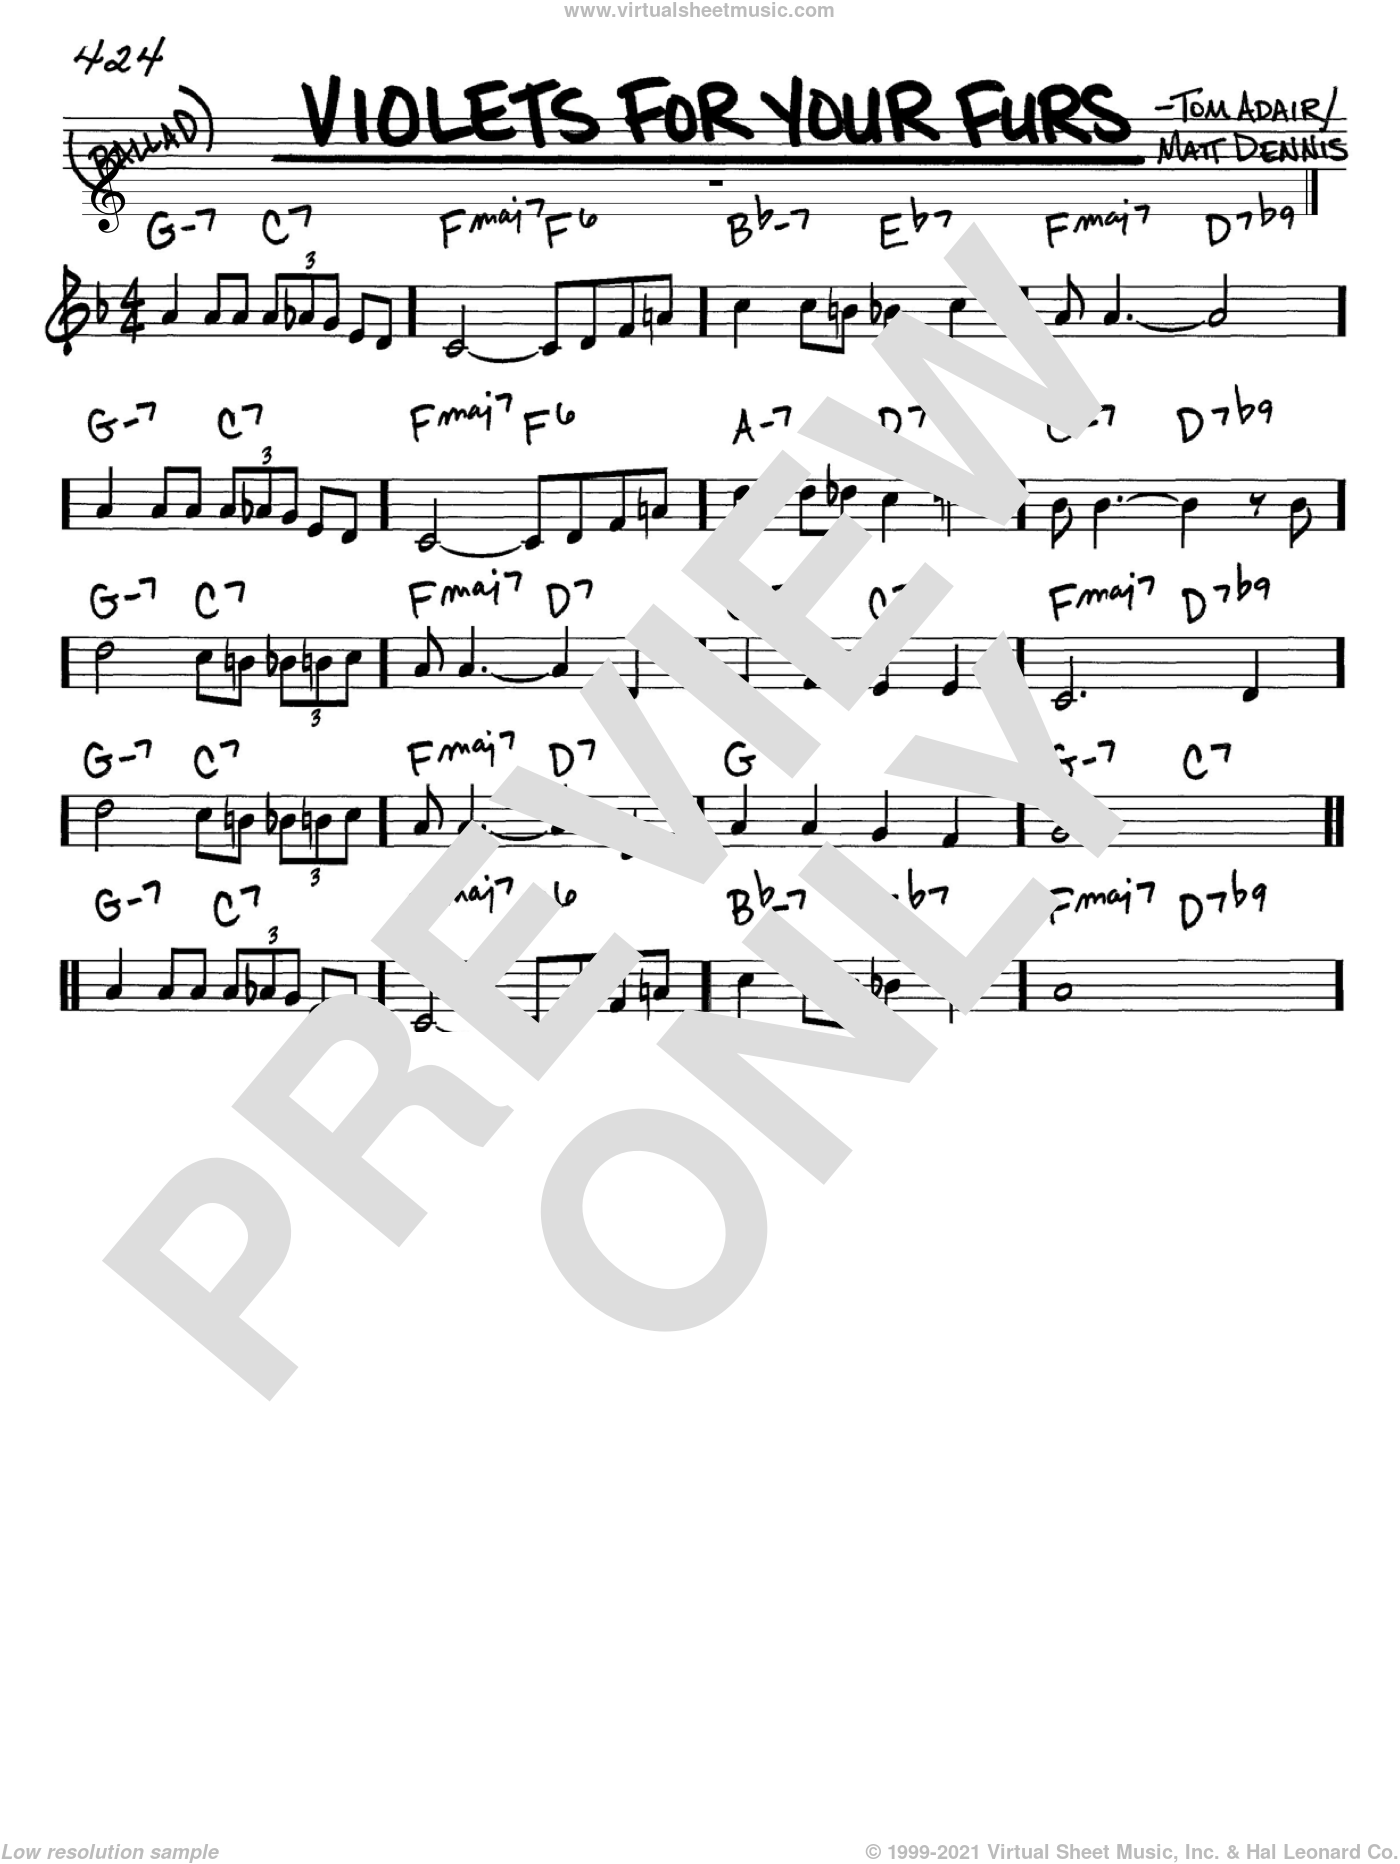 Violets For Your Furs sheet music for voice and other instruments (C) by Tom Adair, Frank Sinatra and Matt Dennis. Score Image Preview.